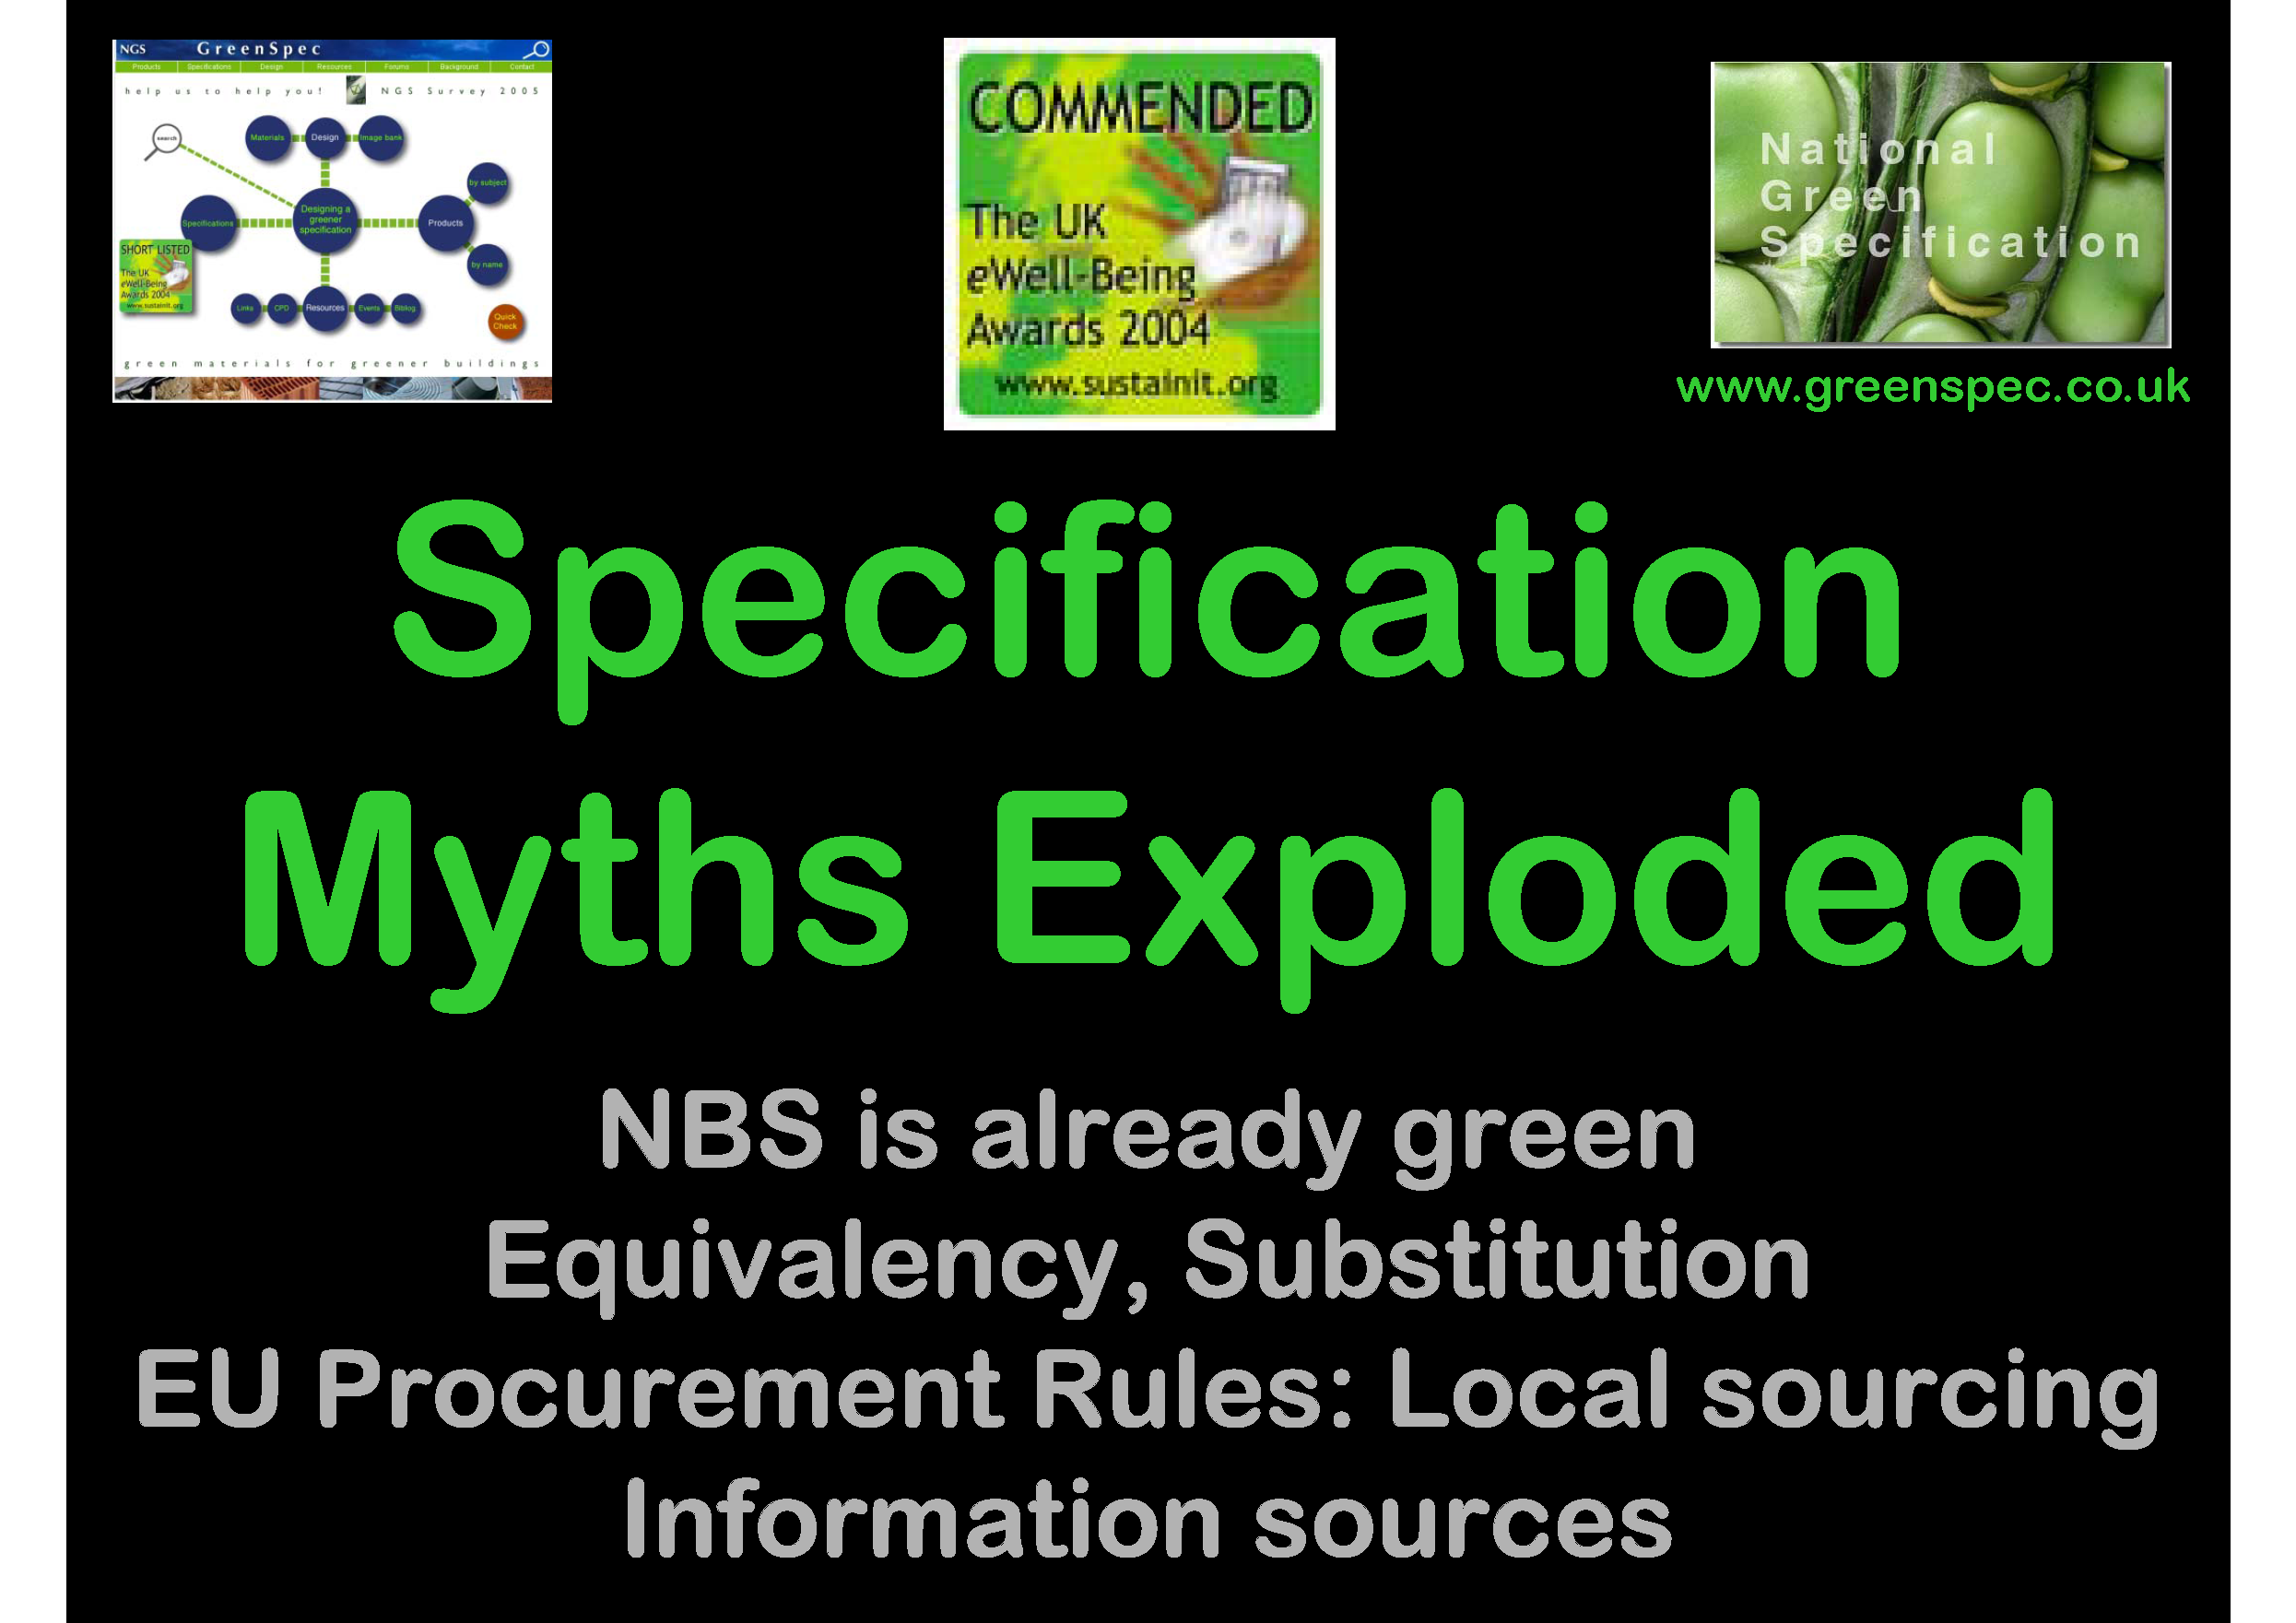 SpecificationMythsExploded.png